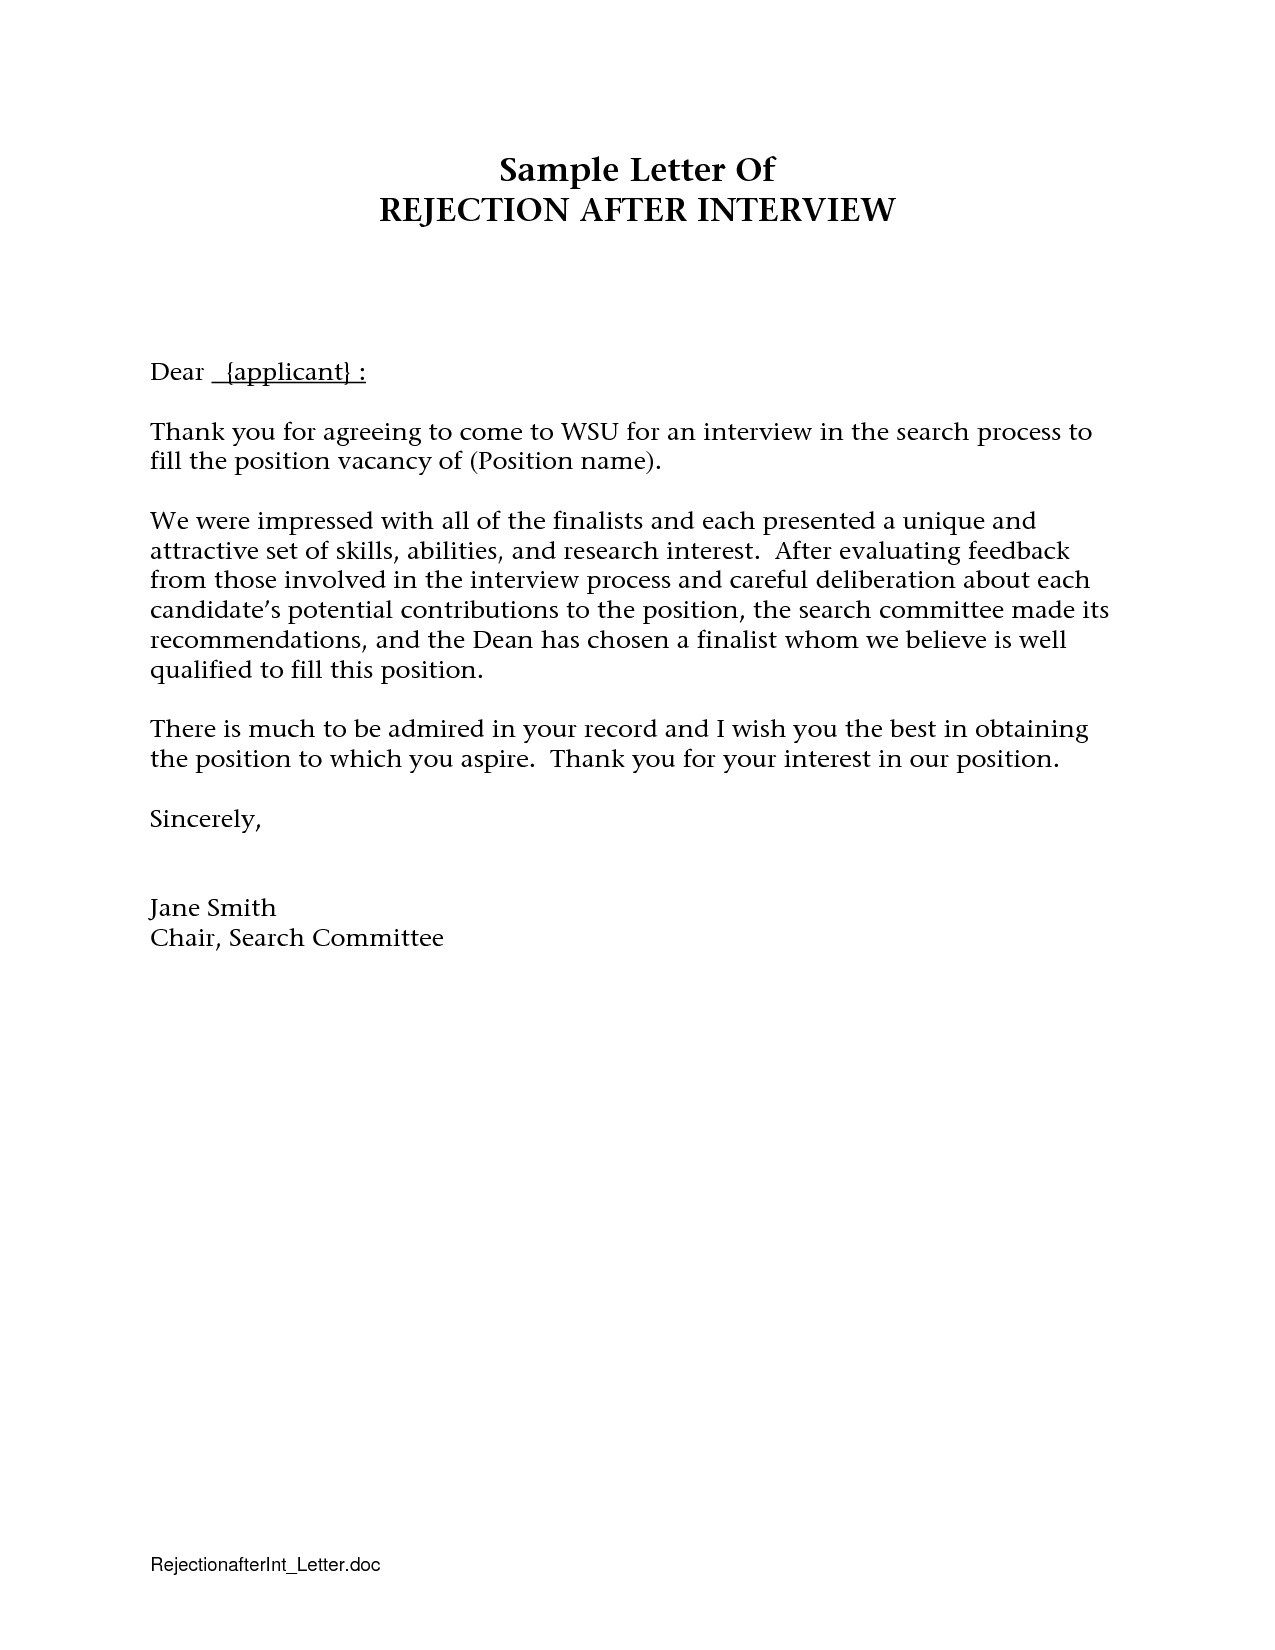 rejection letter template after interview examples letter templates